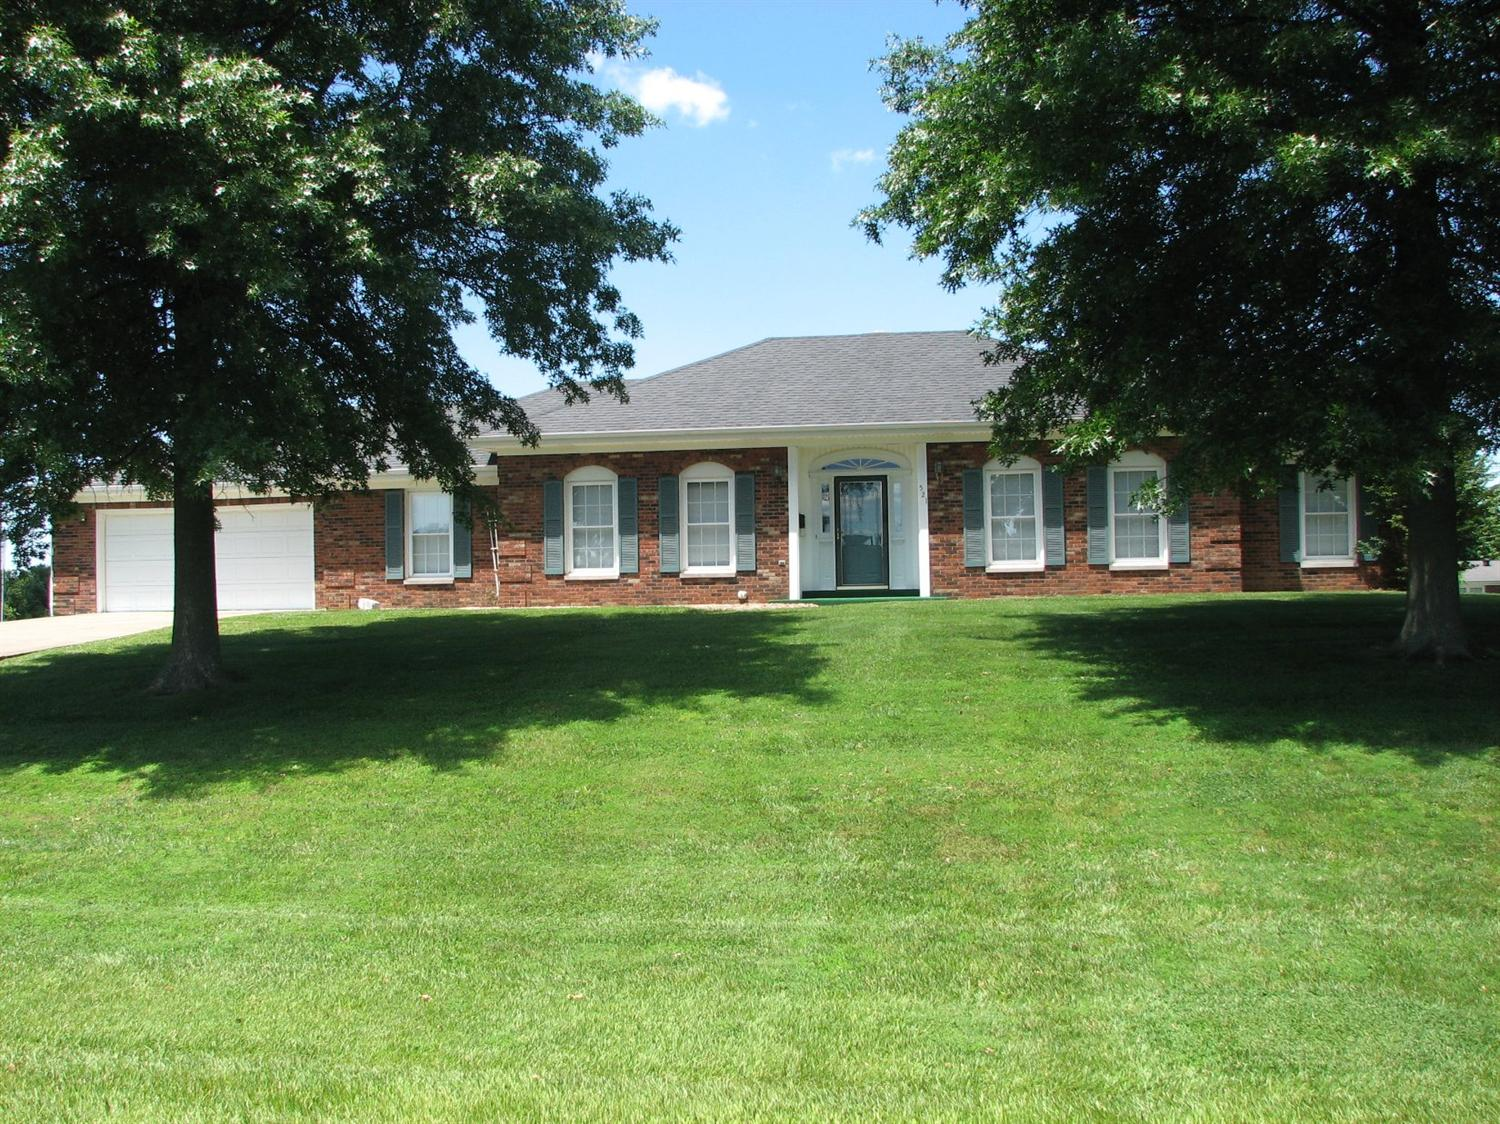 Home For Sale at 452 Beaumont, Harrodsburg, KY 40330